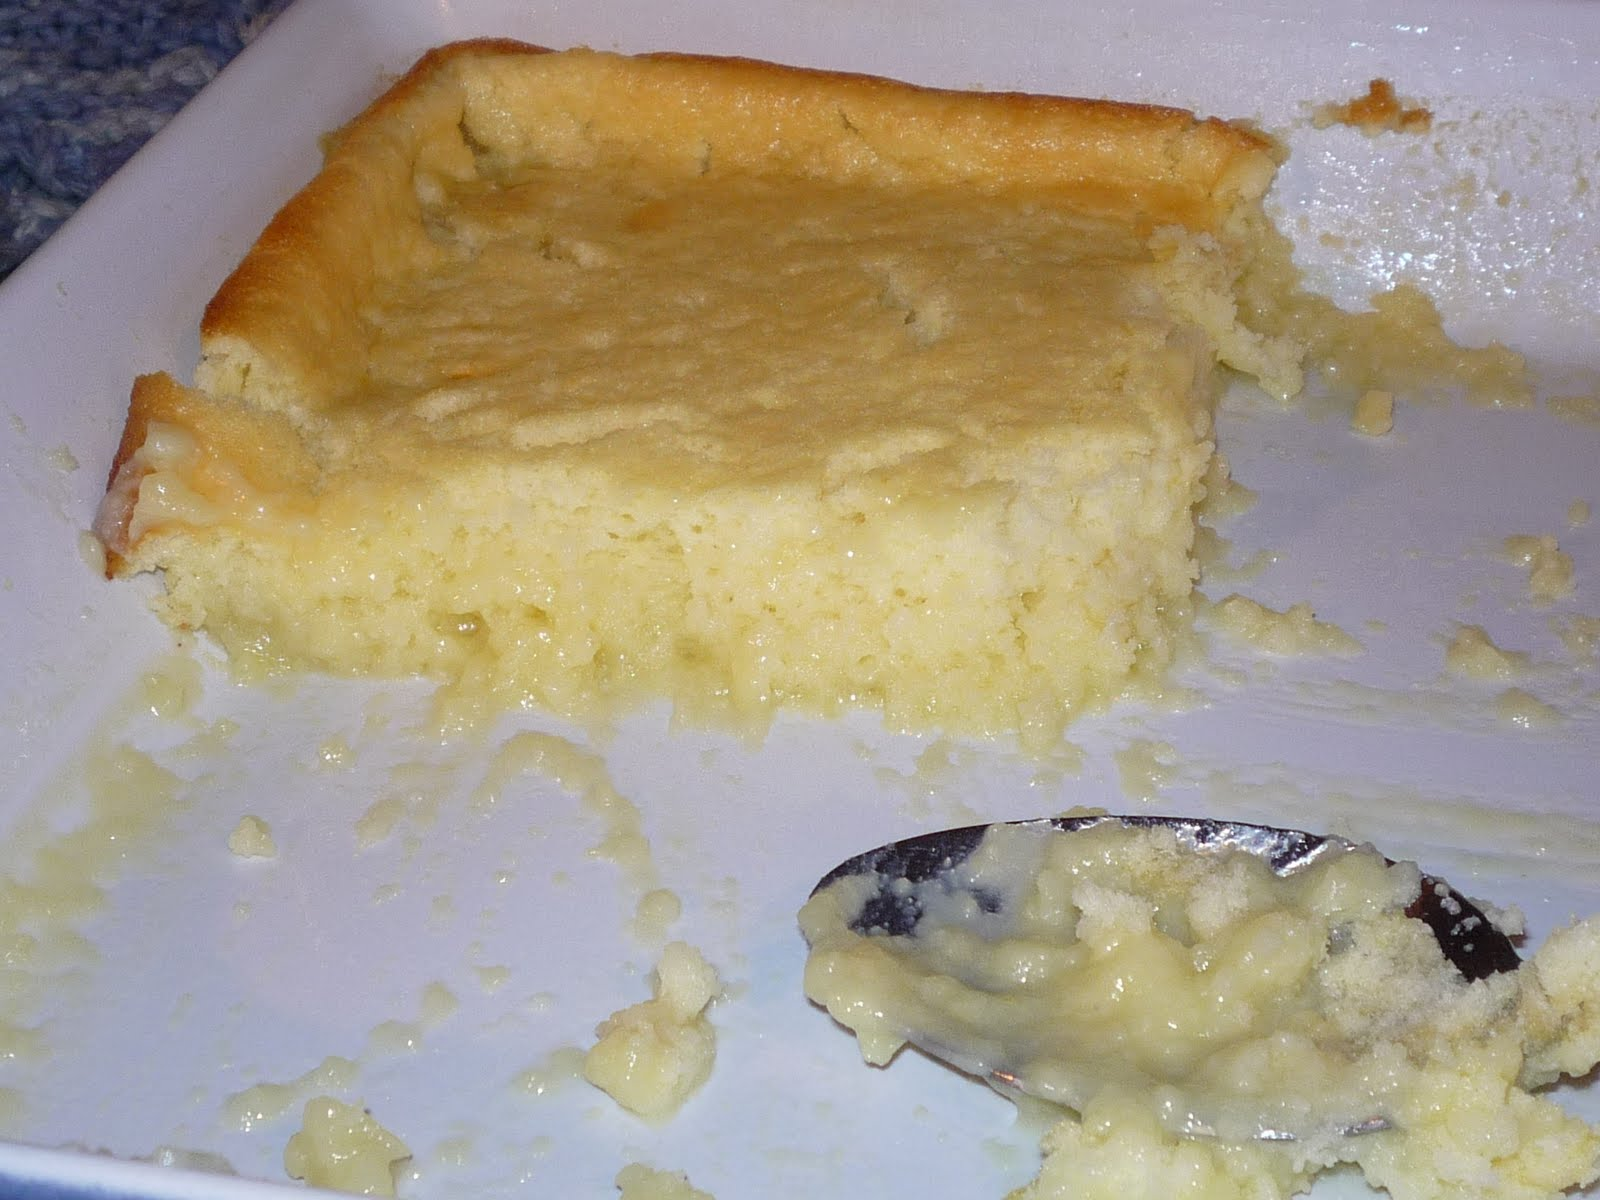 ReTorte: Magazine Monday #59: Lemon Buttermilk Pudding Cake